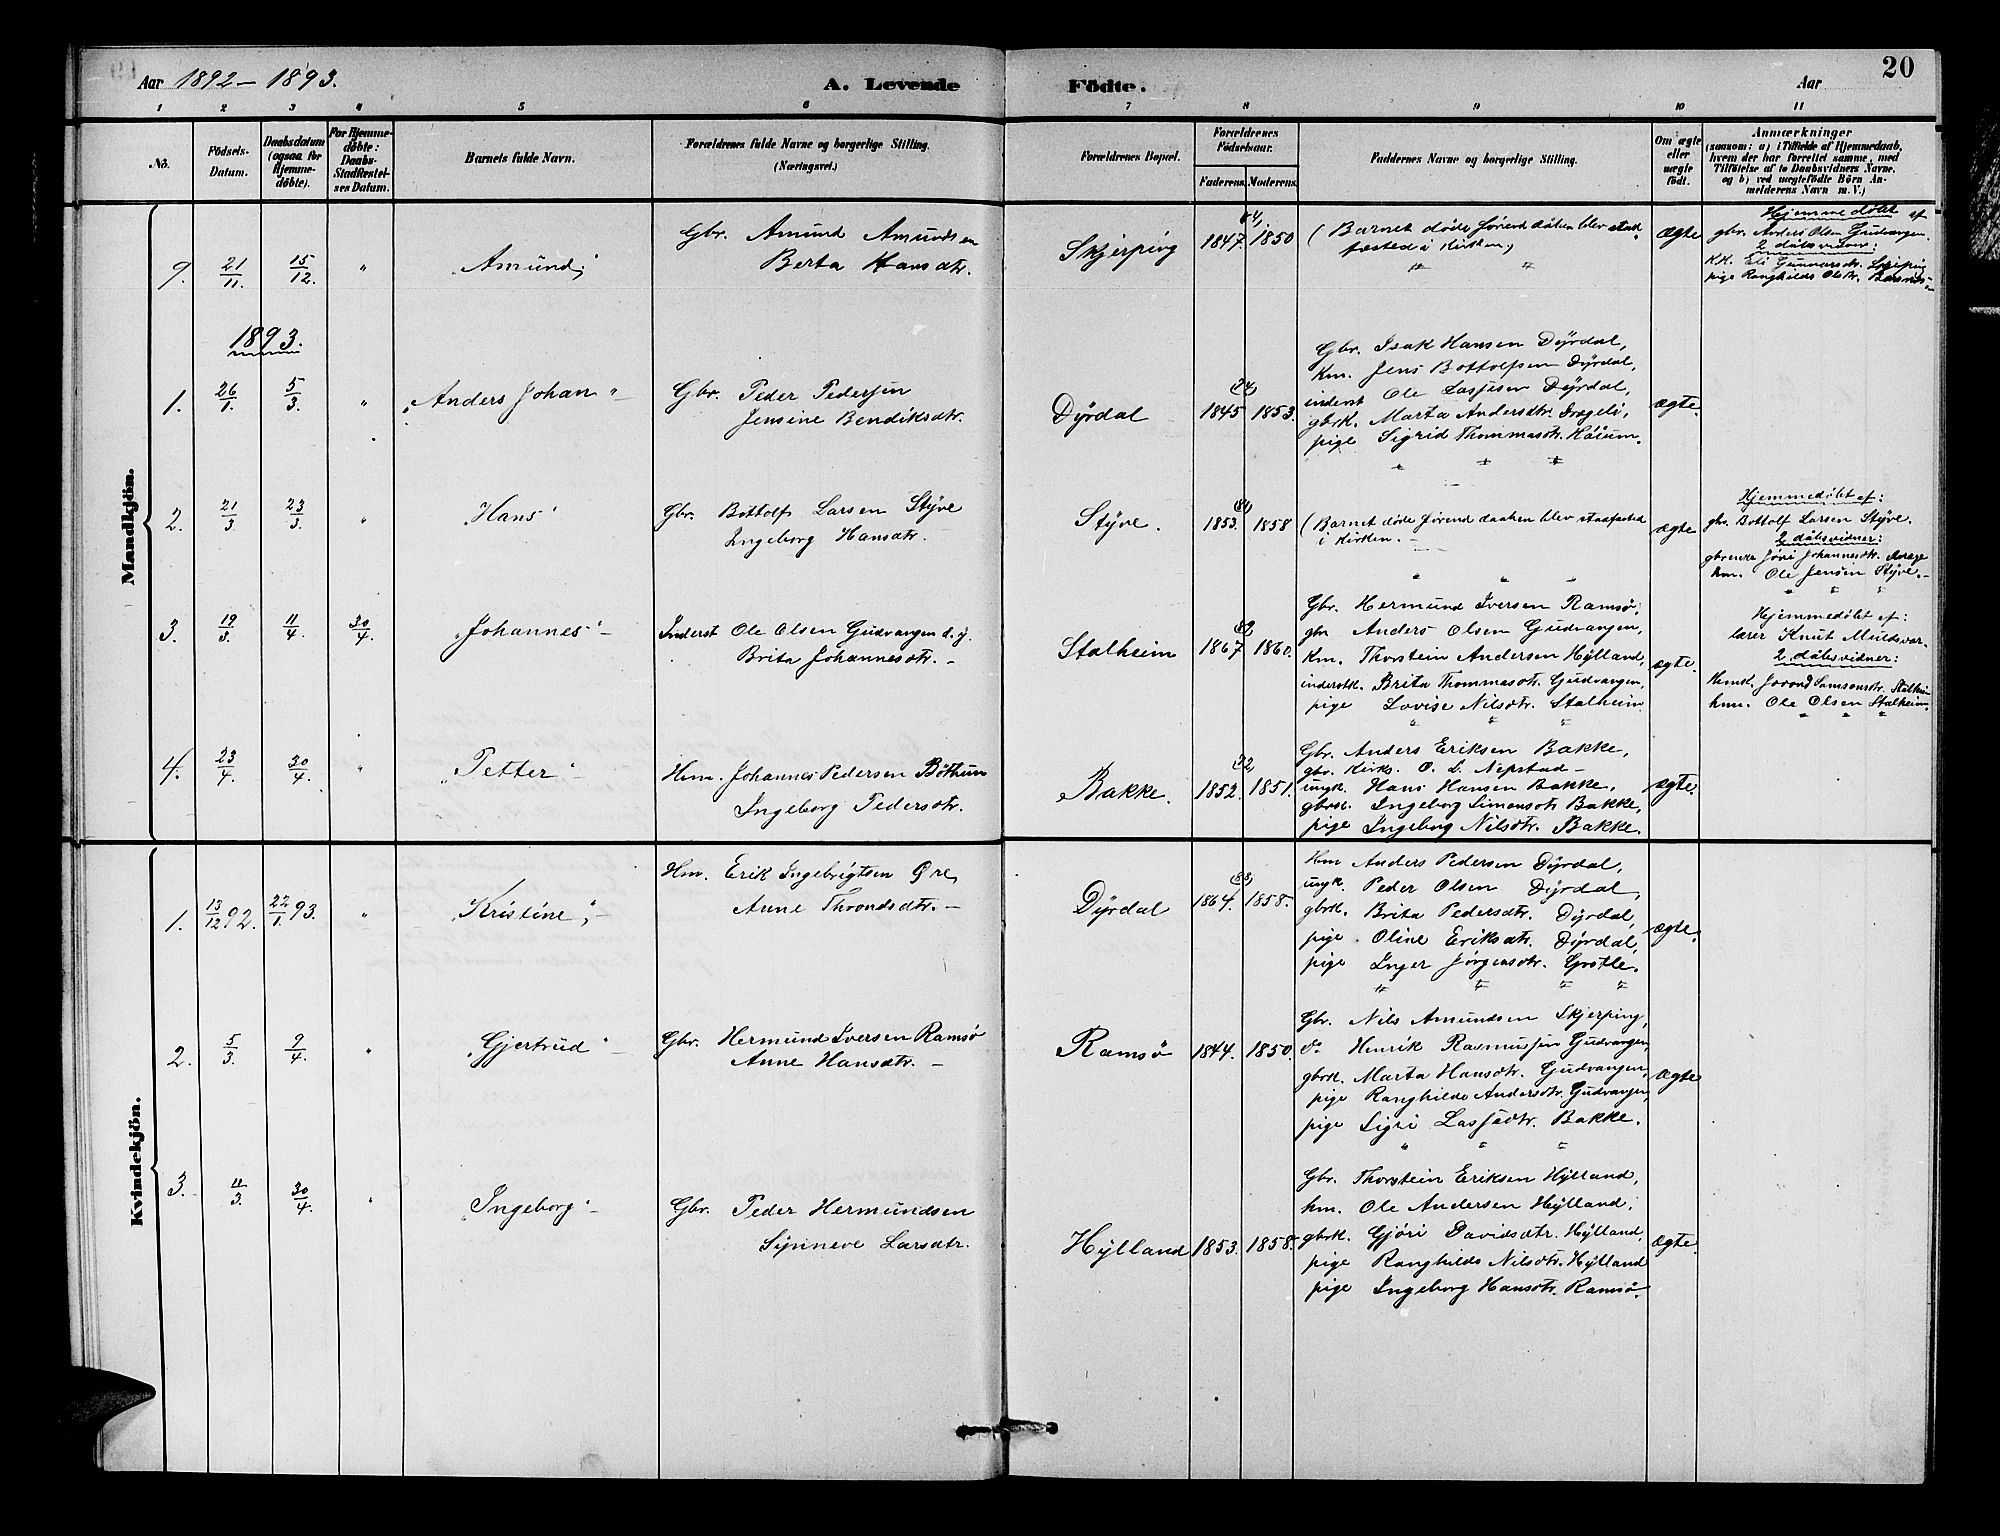 SAB, Aurland sokneprestembete, H/Hb/Hbc/L0002: Parish register (copy) no. C 2, 1883-1900, p. 20